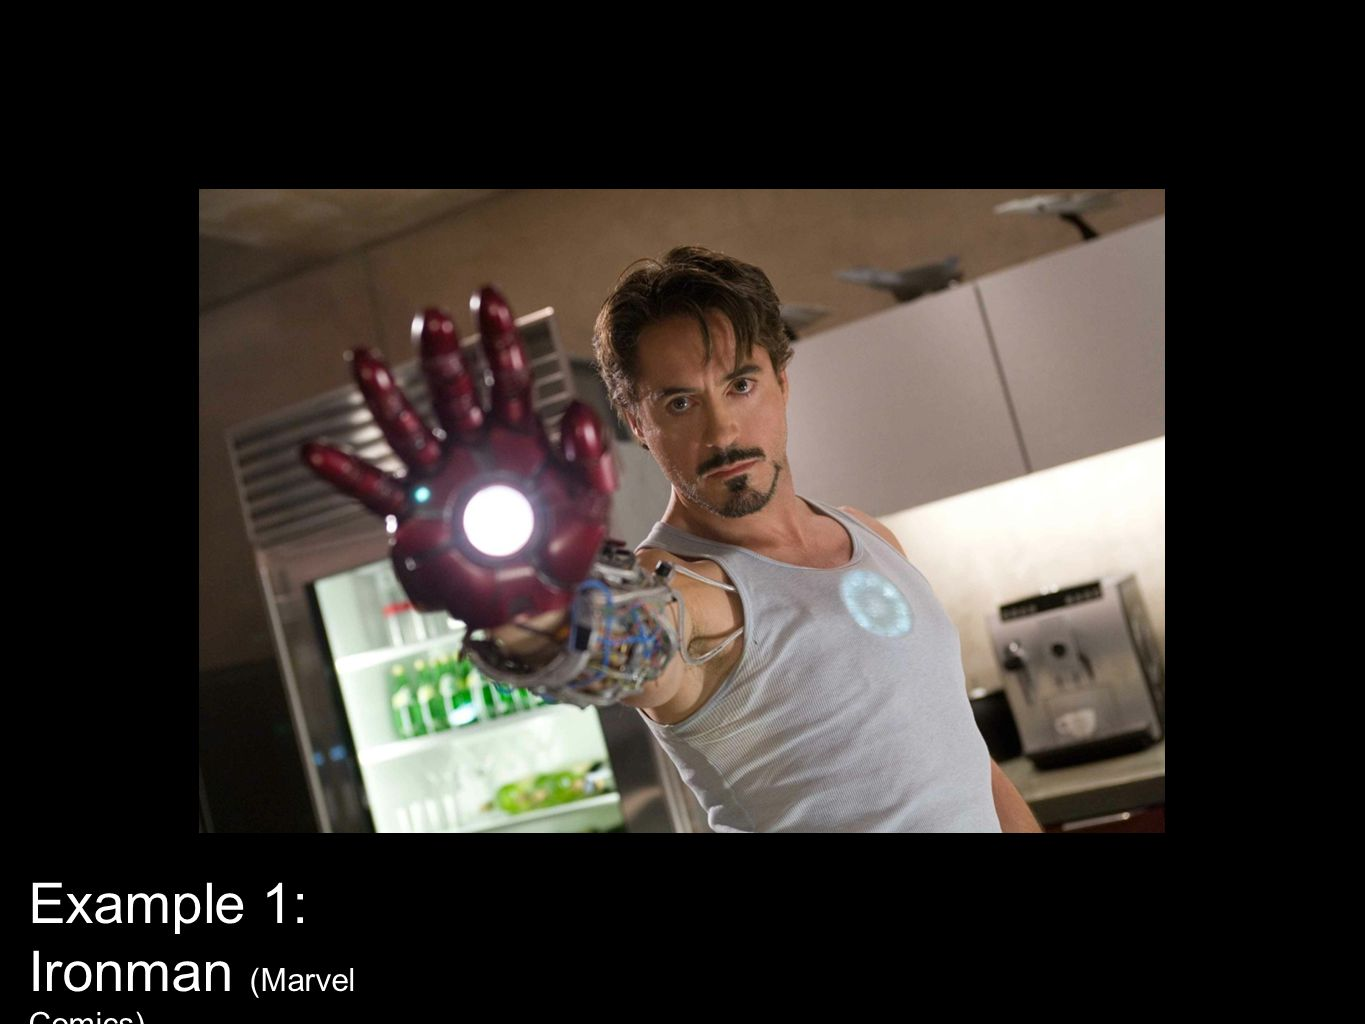 Example 1: Ironman (Marvel Comics)